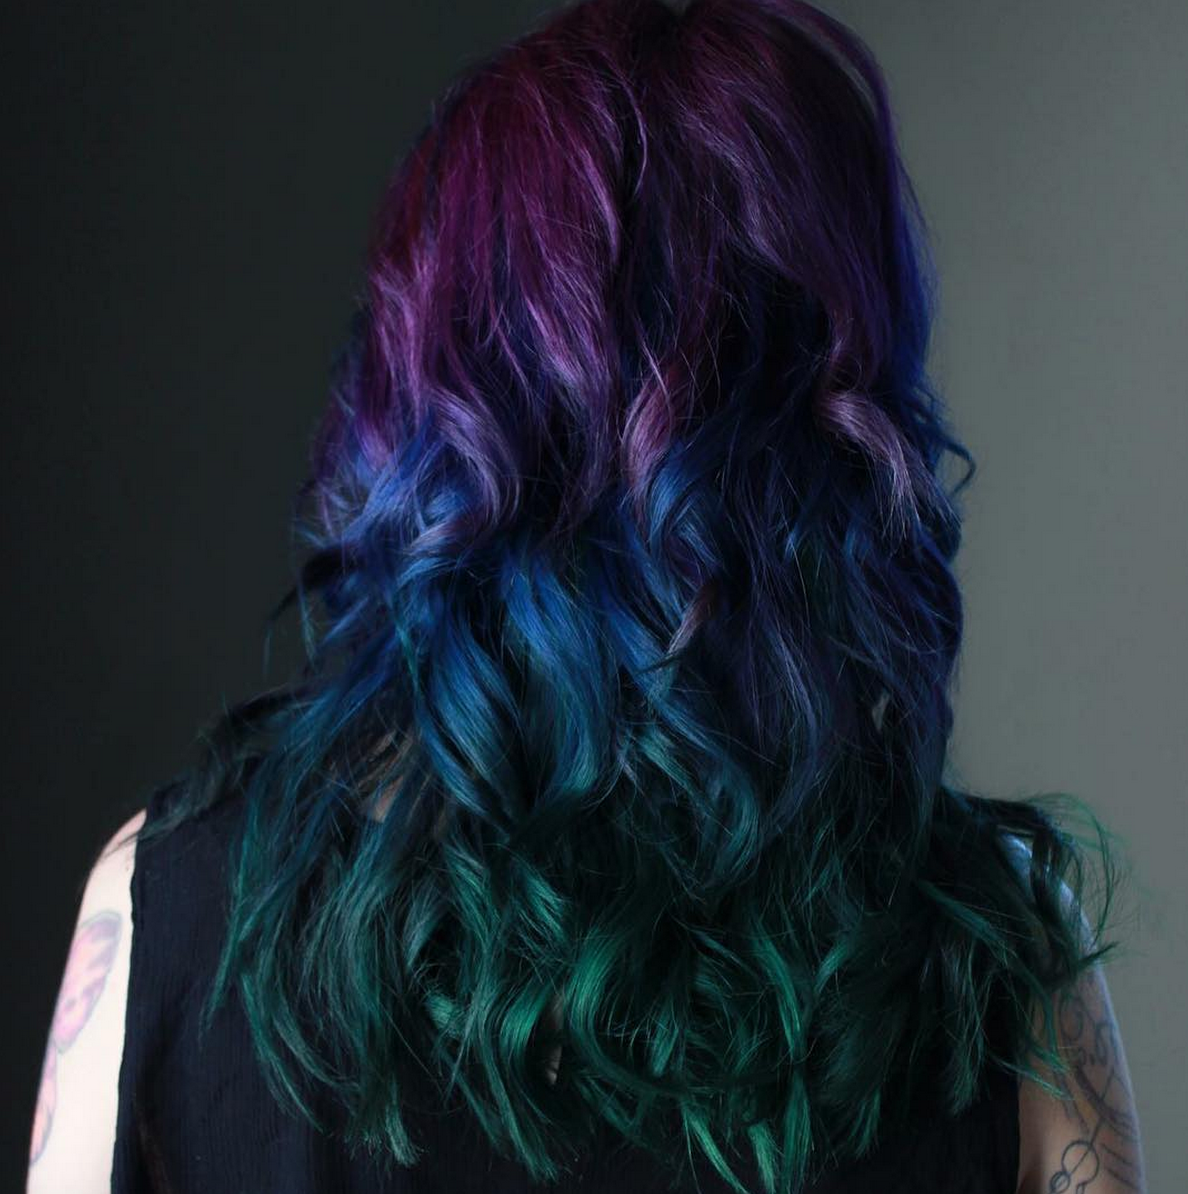 Peacock hair color trend is gorgeous and captivating ... - photo#38